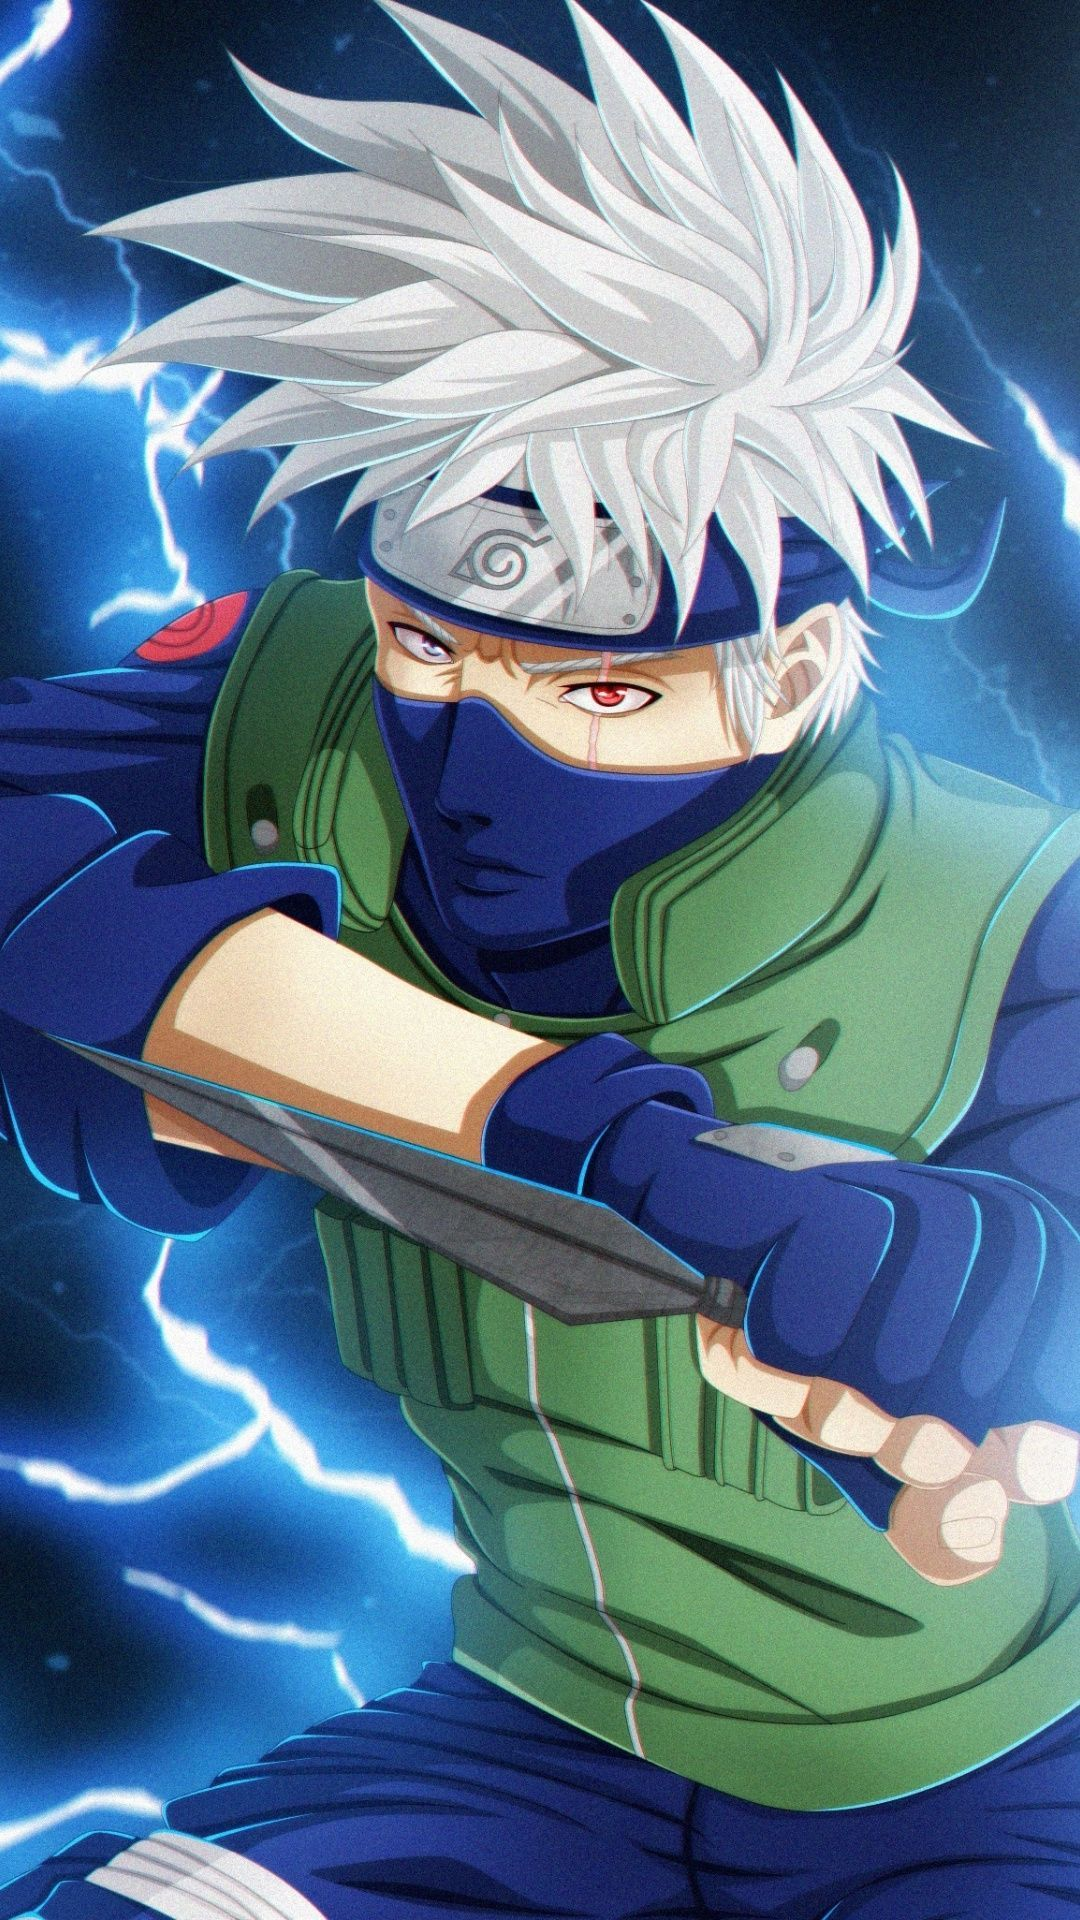 Naruto Shippuden Kakashi Wallpaper Anime Kakashi Hatake White Hair Anime Boy Art 1080x1920 Clouds Leaves Uchiha Sasu Kakashi Hatake Naruto Painting Anime Boy